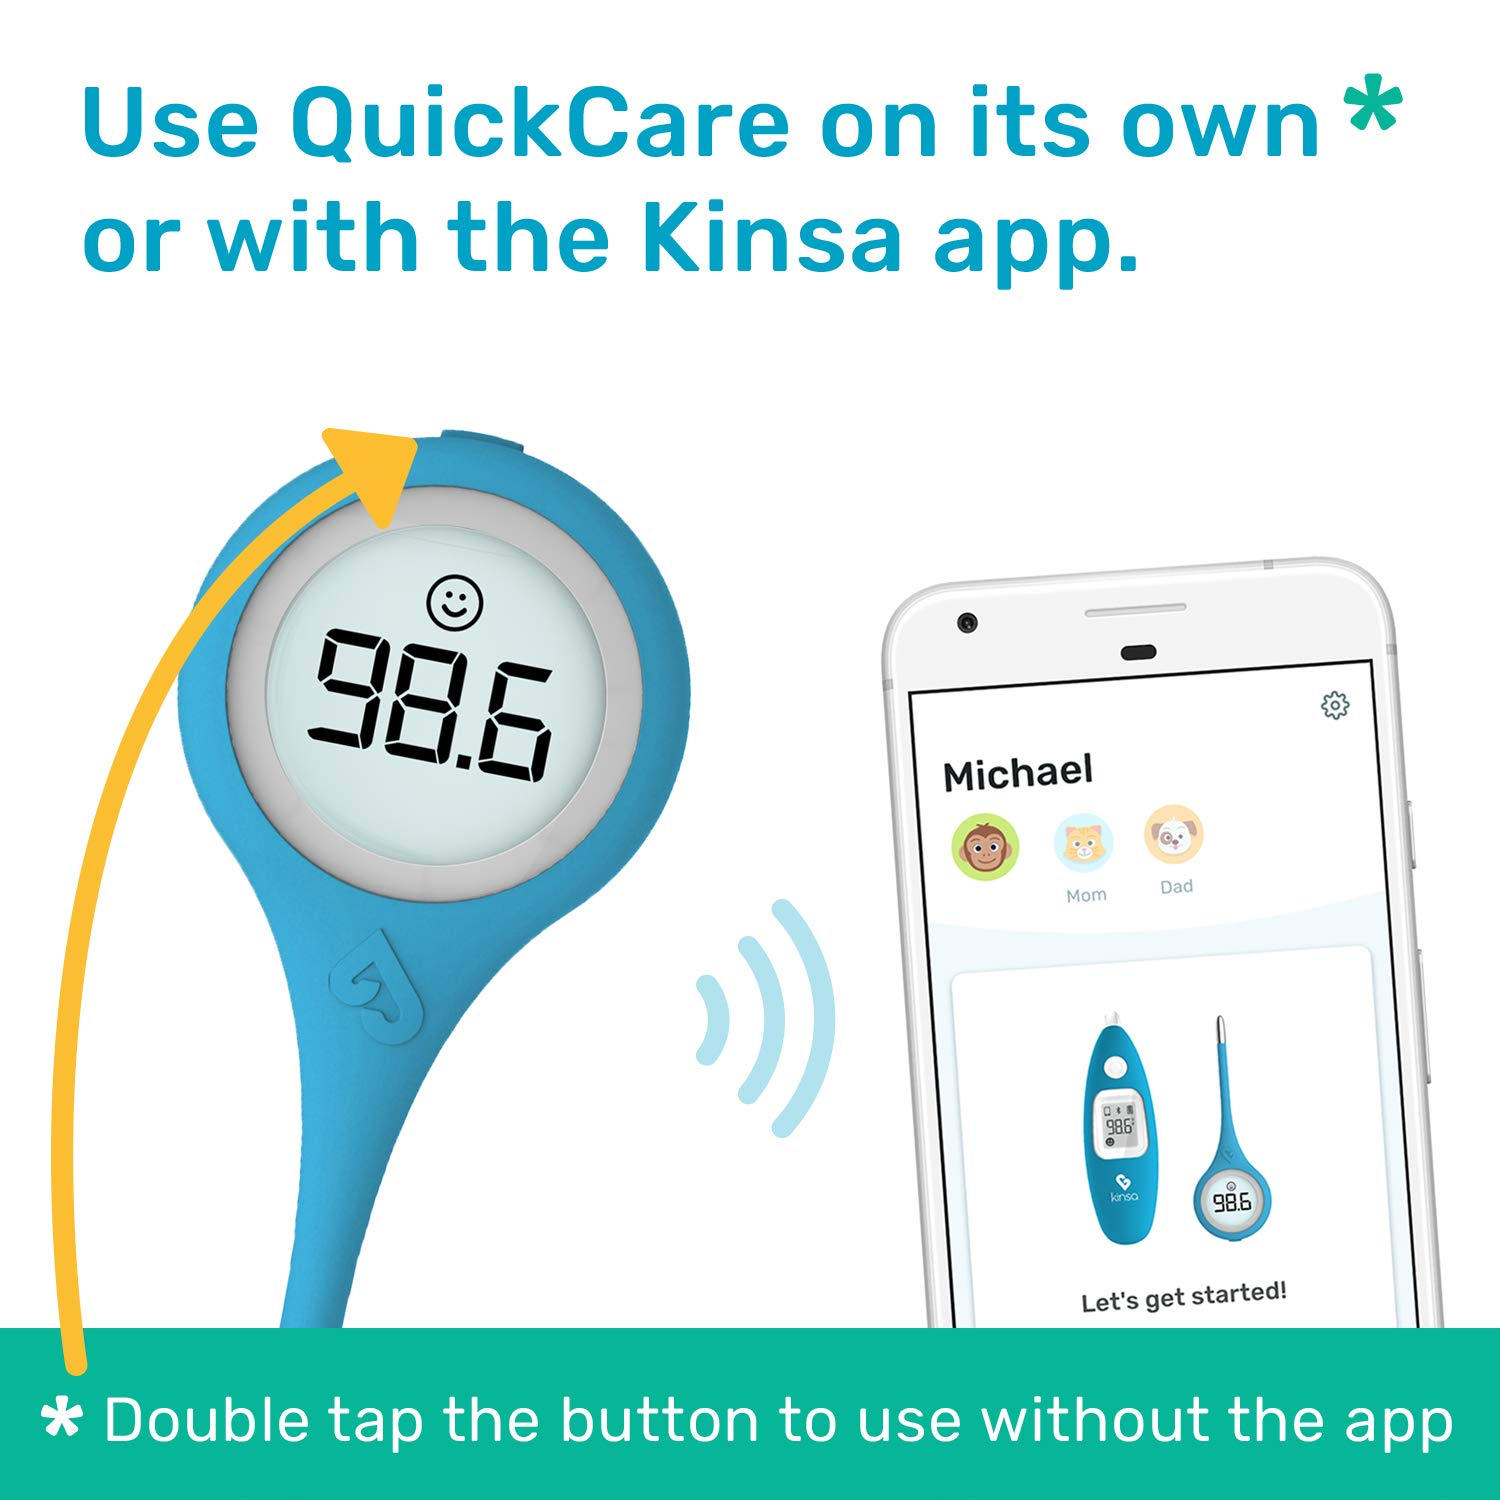 Kinsa QuickCare Smart Thermometer for Fever - Digital Medical Baby, Kid and Adult Termometro - Accurate, Fast, FDA Cleared Thermometer for Oral, Armpit or Rectal Temperature Reading: Industrial & Scientific